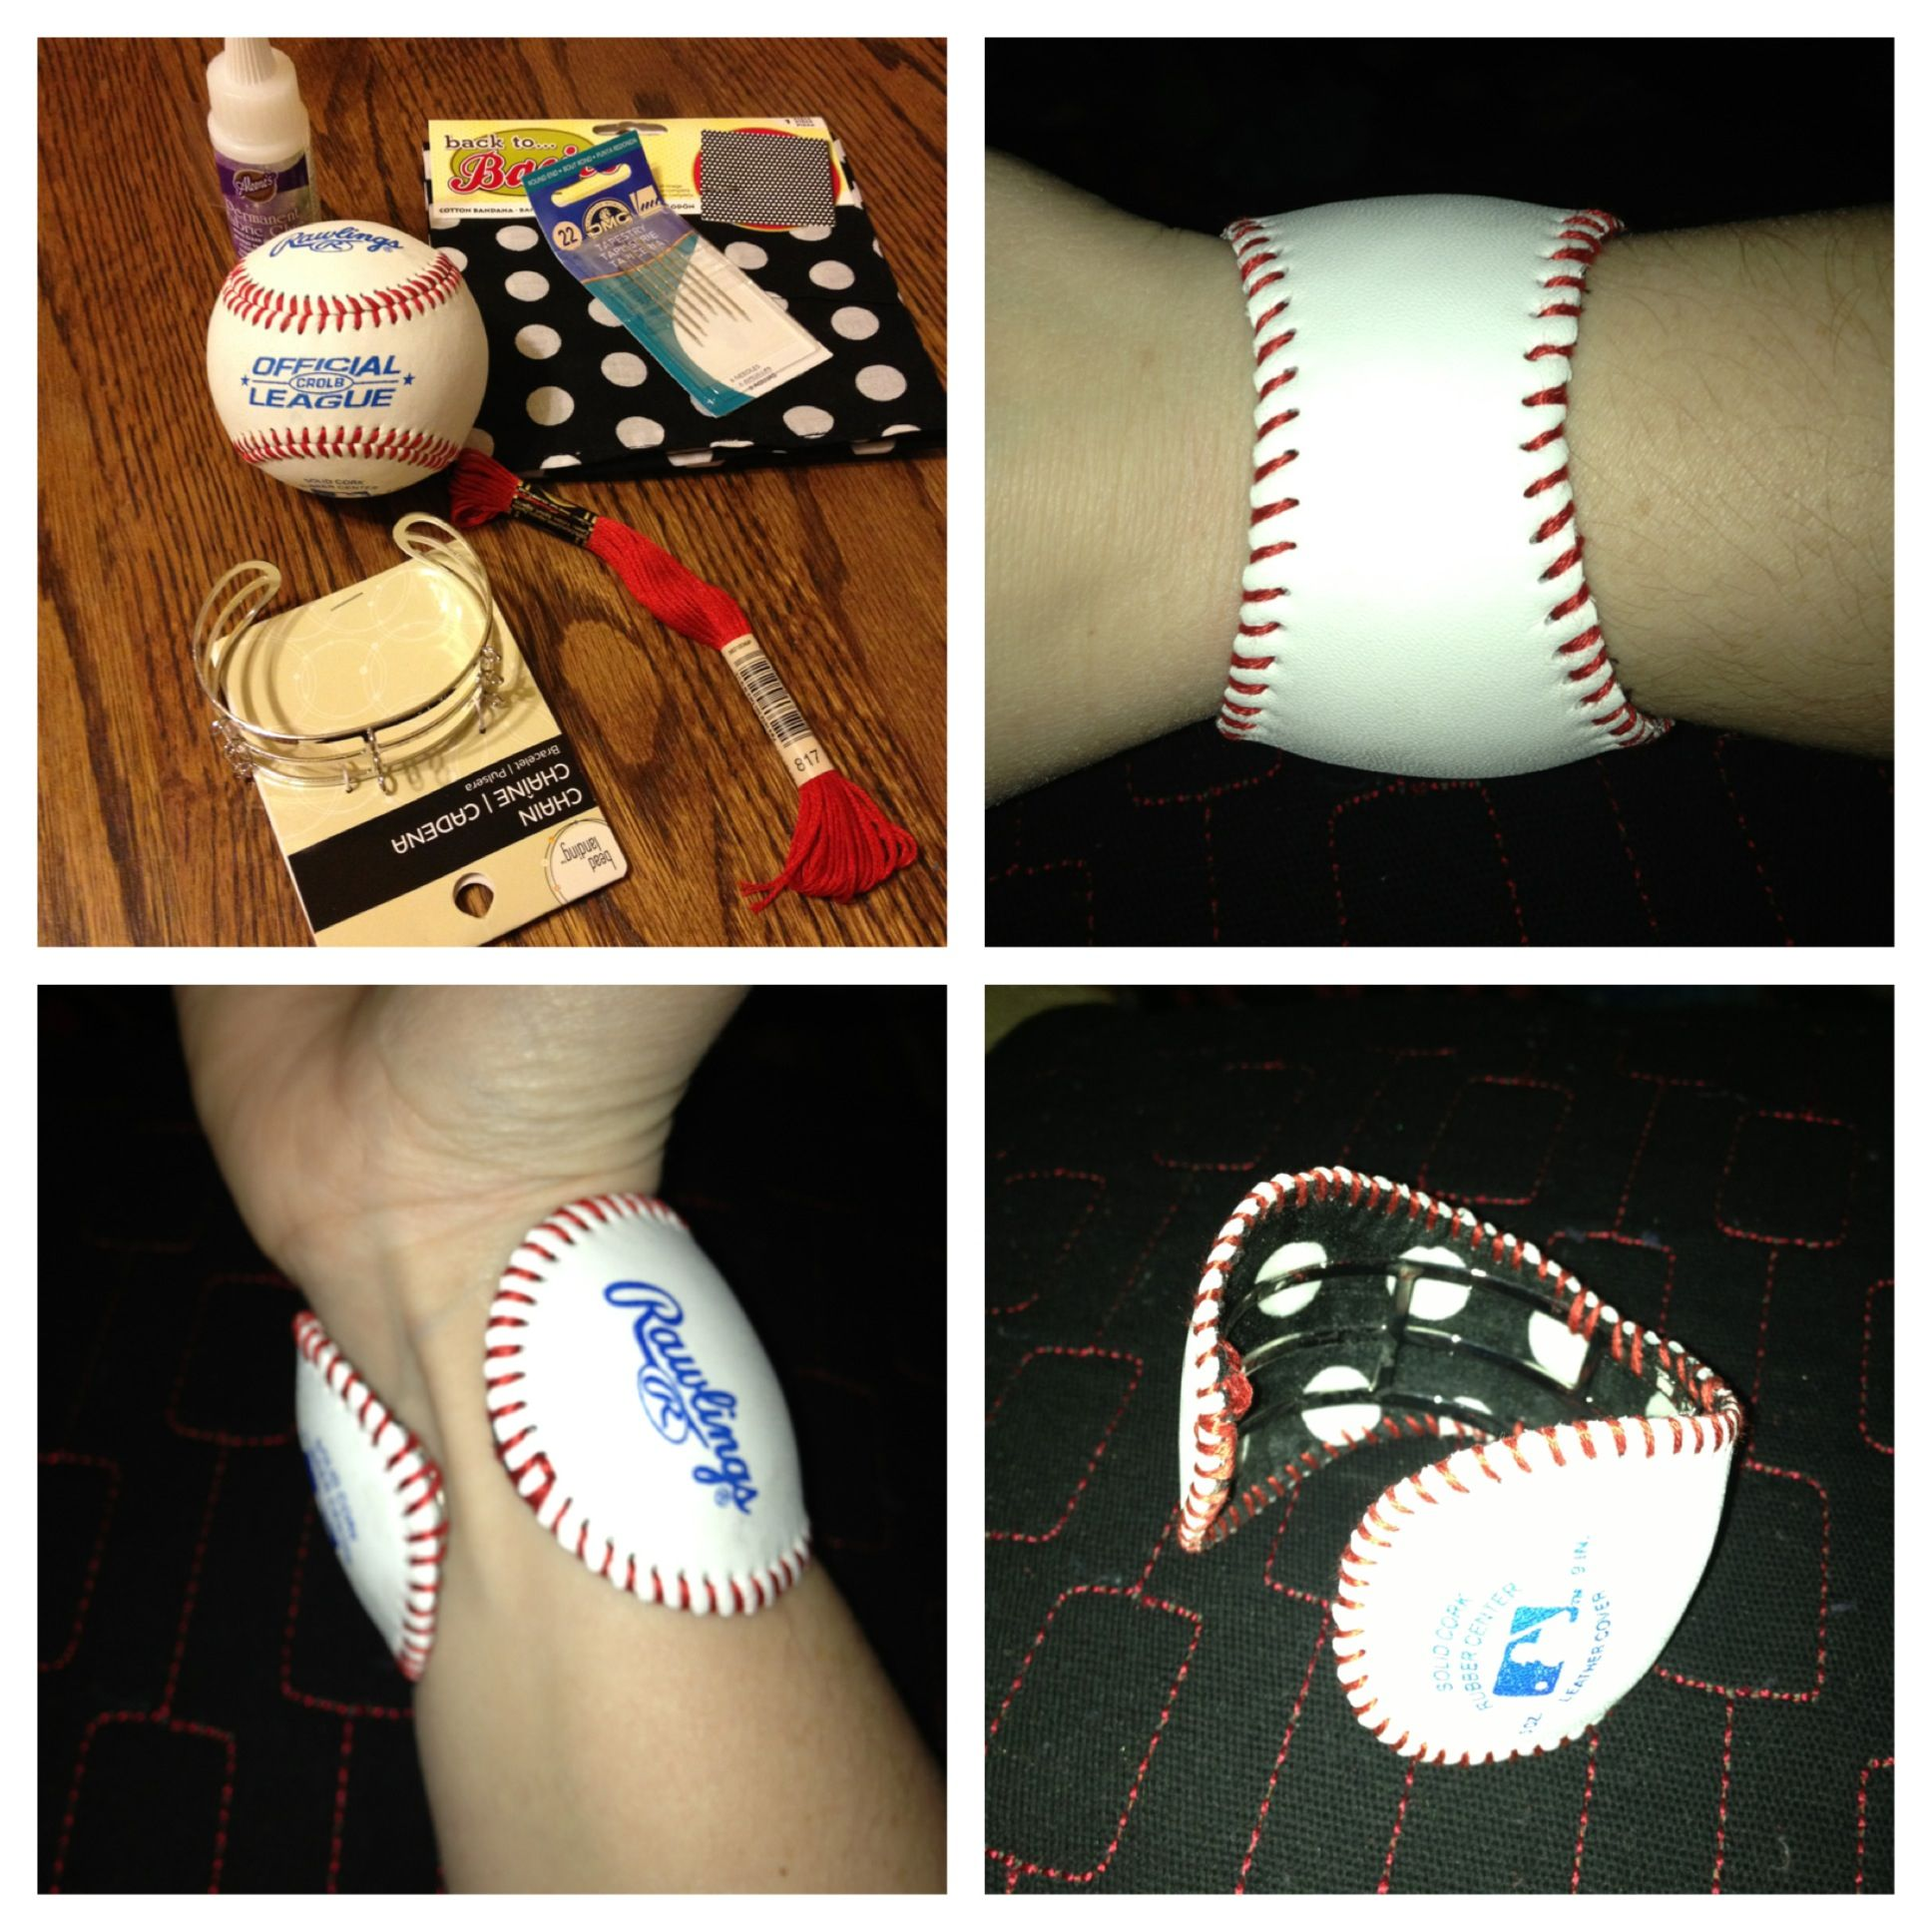 Baseball Cuff Bracelet Put Fabric On The Back Side Of Frame To Keep From Irritating Arm